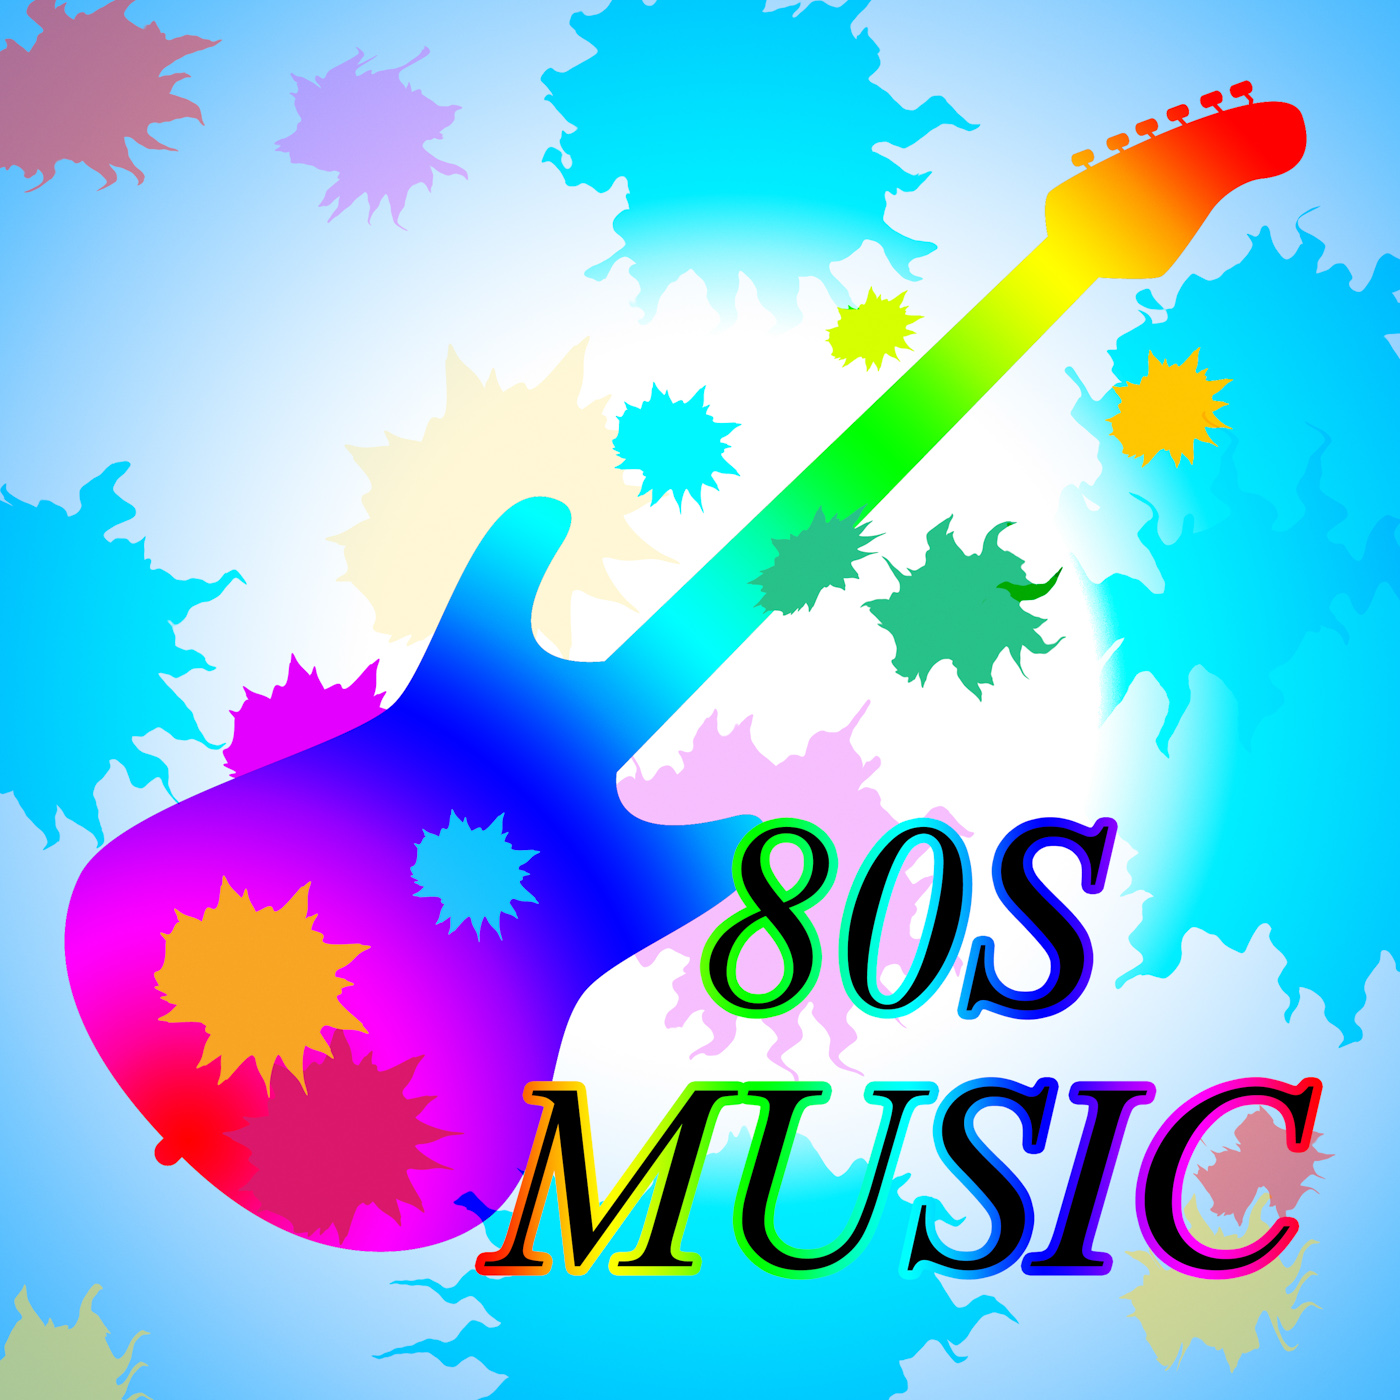 Eighties music shows acoustic music and soundtrack photo